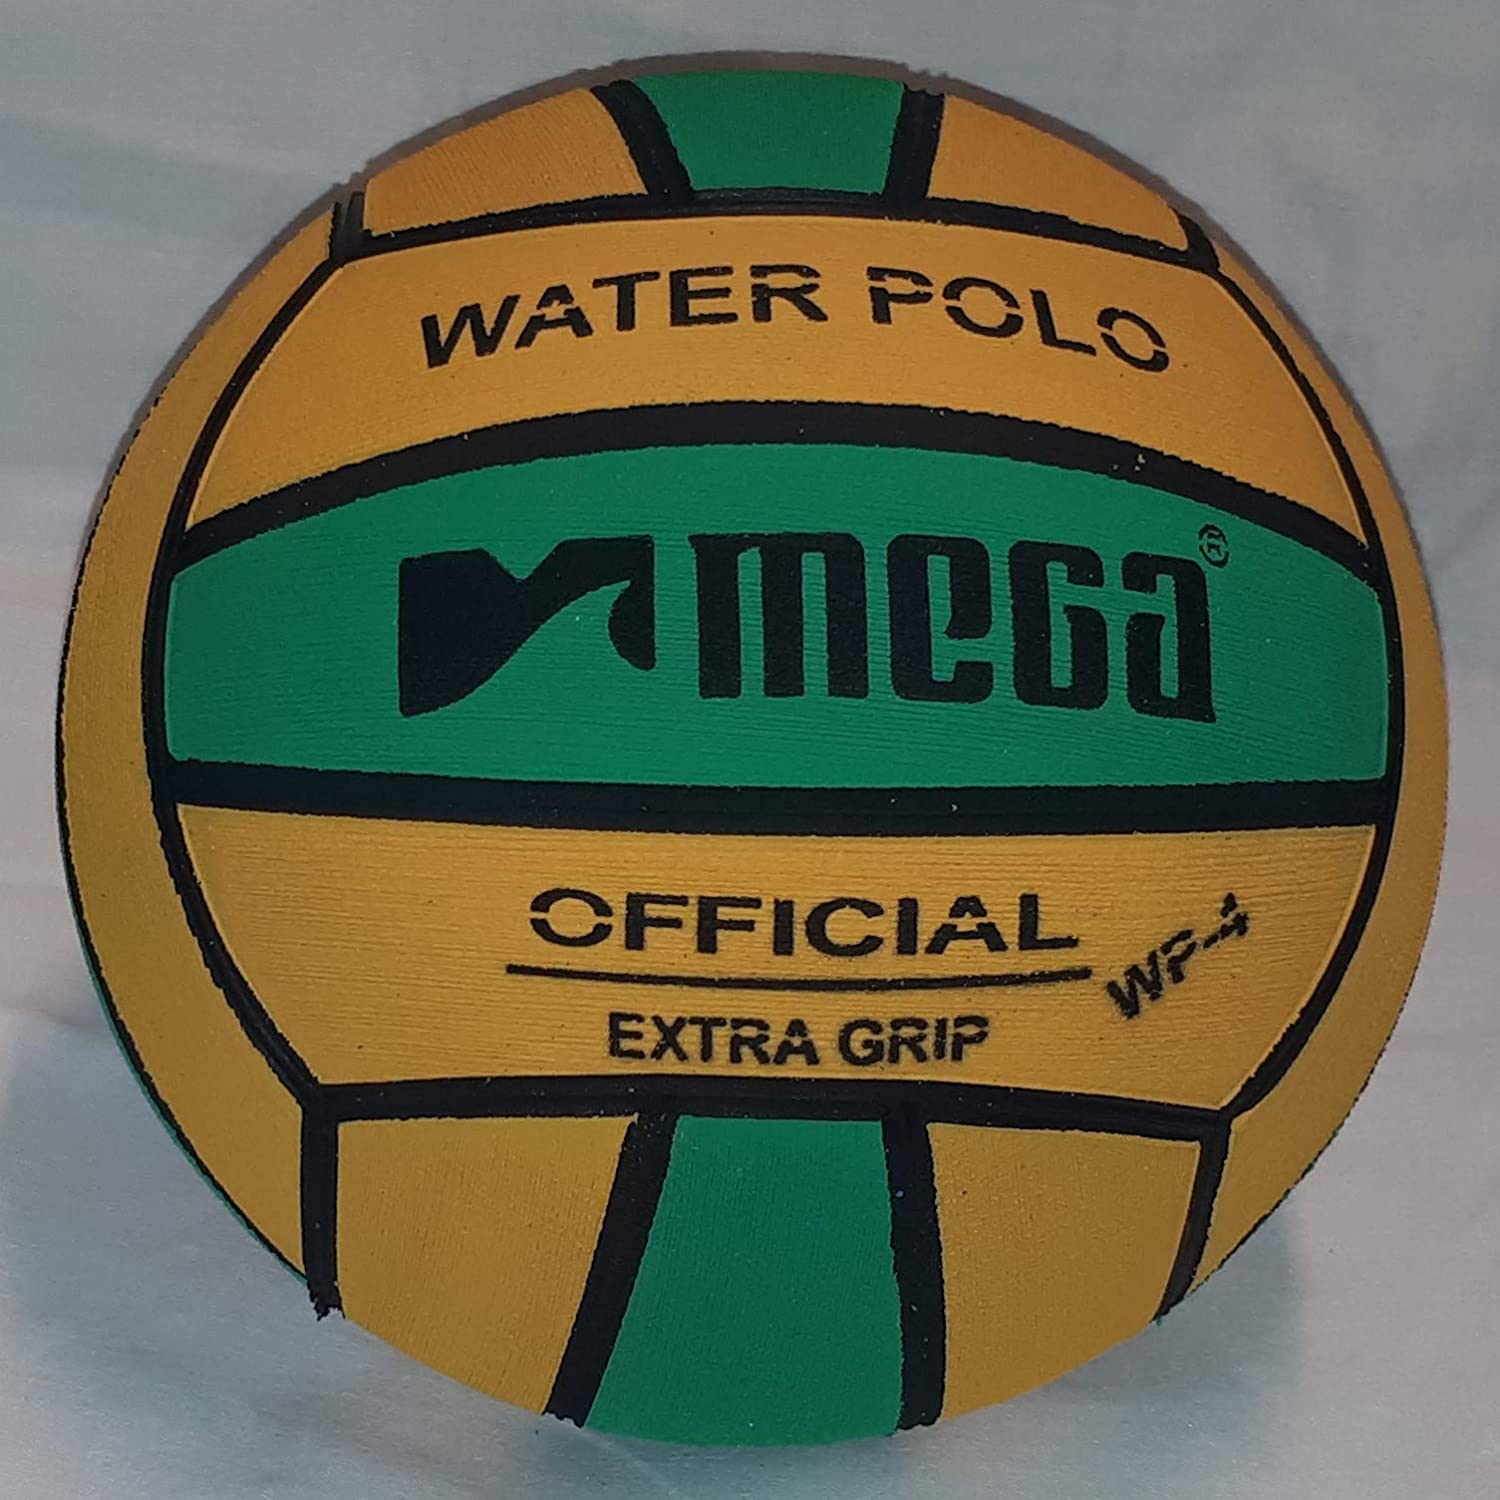 Mega Water Polo Ball - Balón de Golf (Talla 4), Color Verde y ...